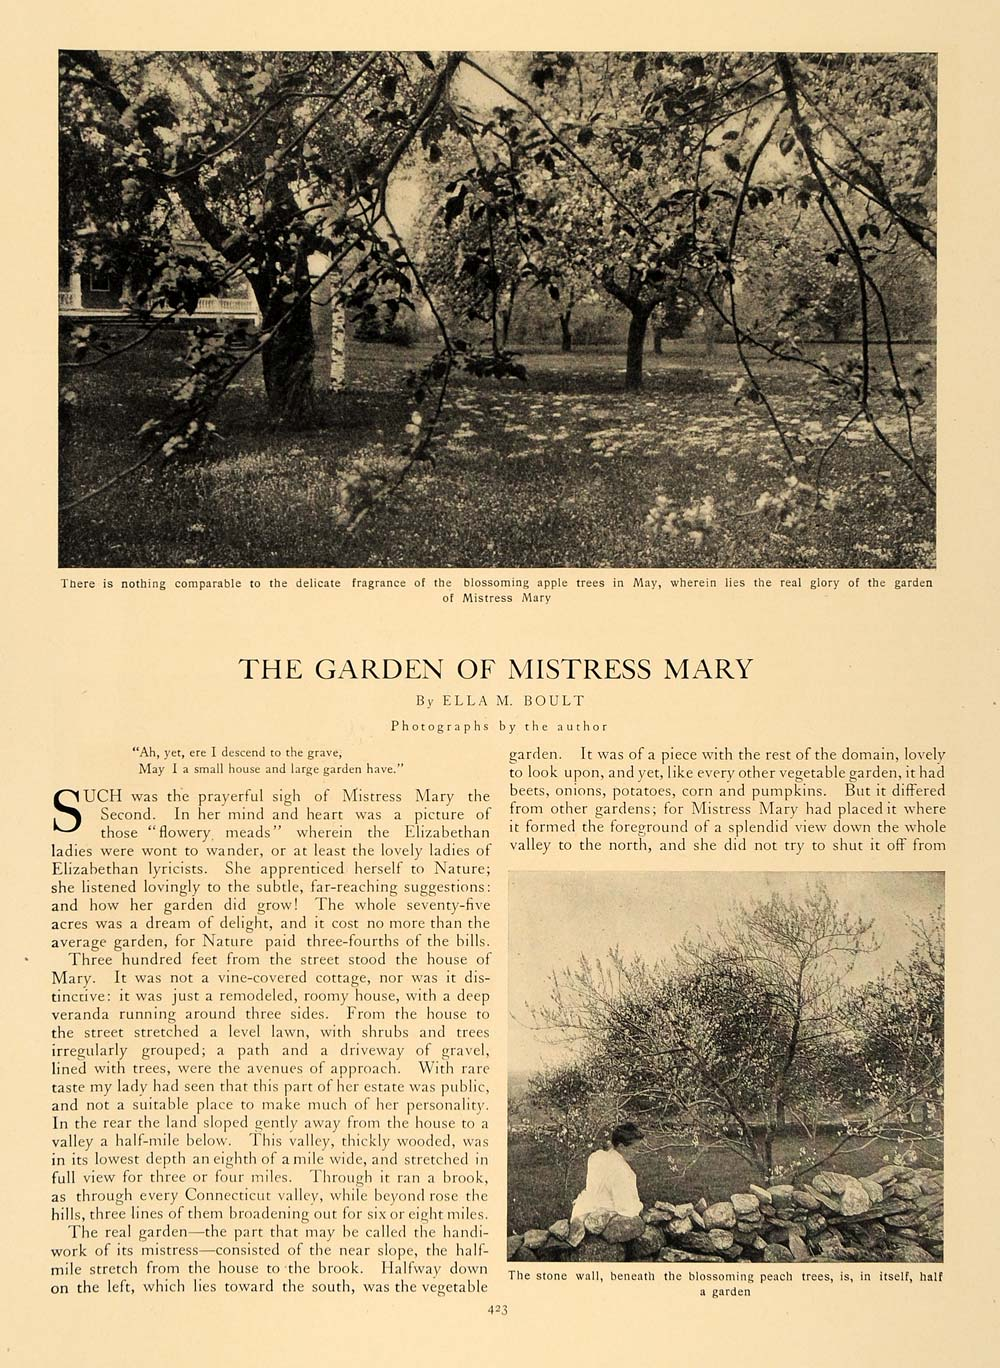 1907 Article Garden Mistress Mary Ella M. Boult Flowers - ORIGINAL CL5